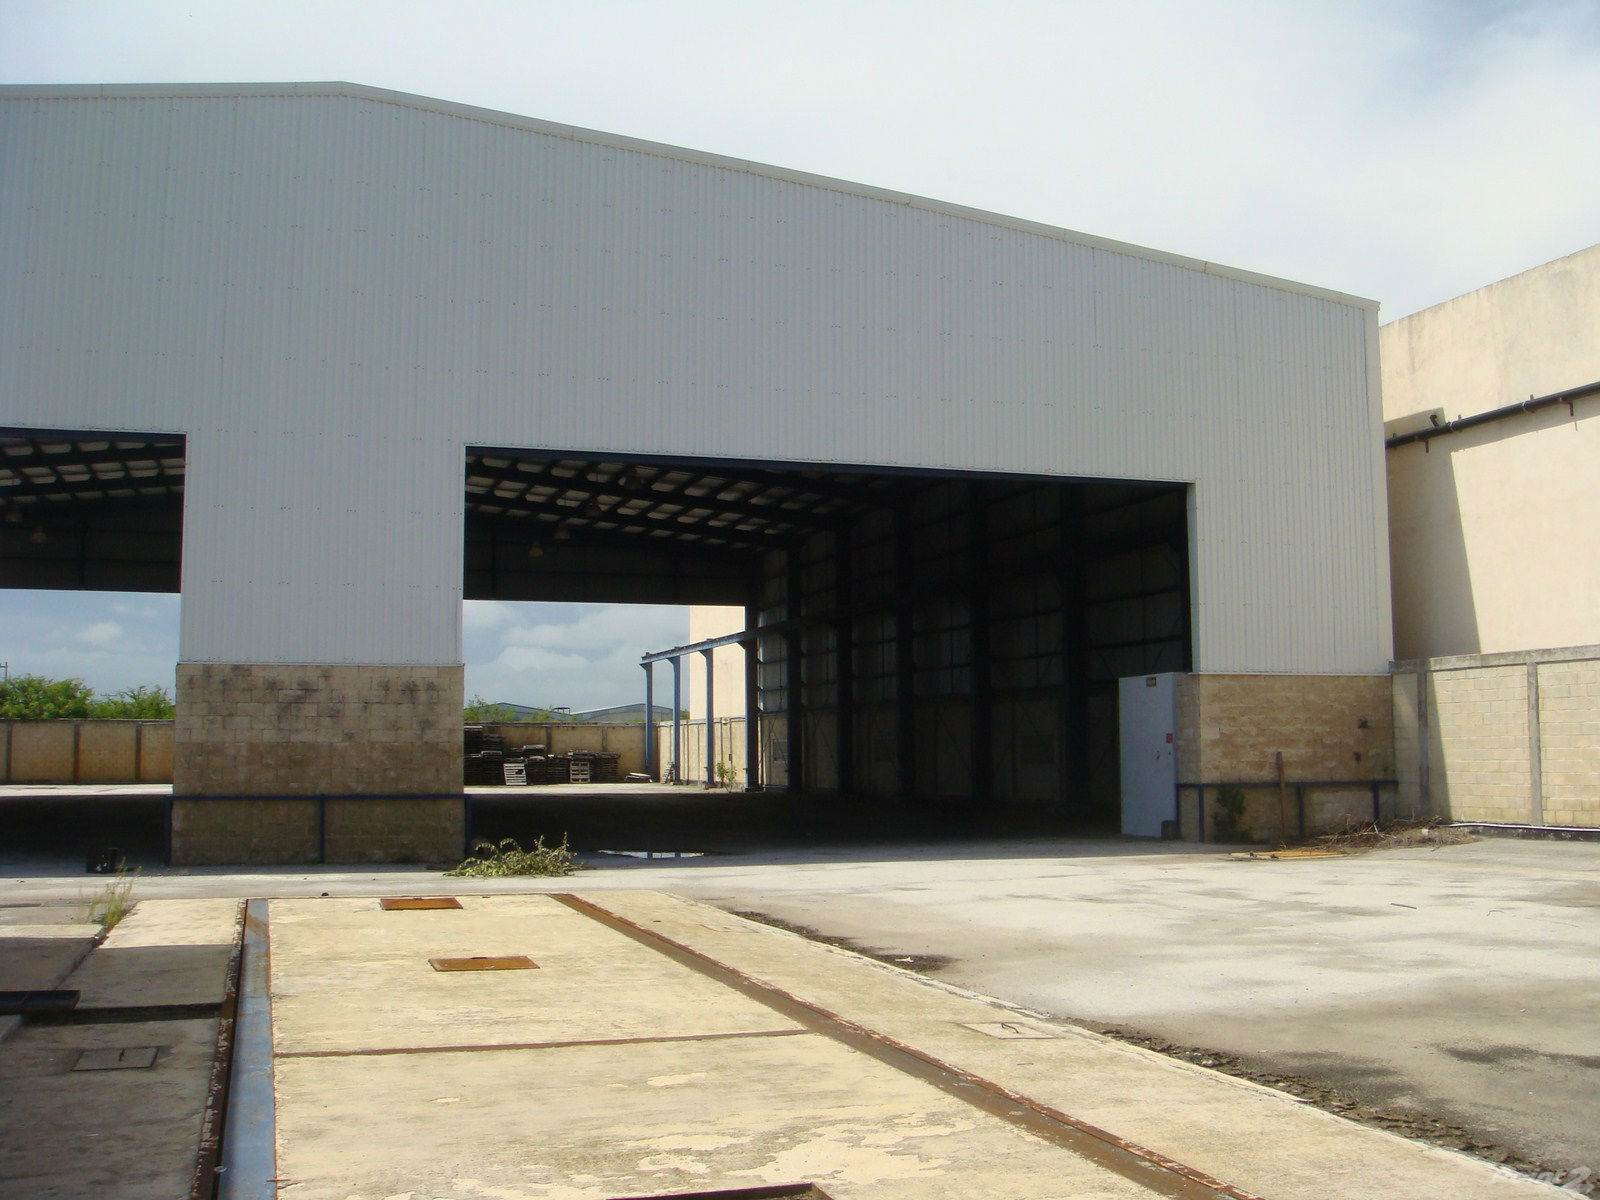 Affitto commerciale in Bodega en Cancun, Cancun, Quintana Roo ,77500  , Messico